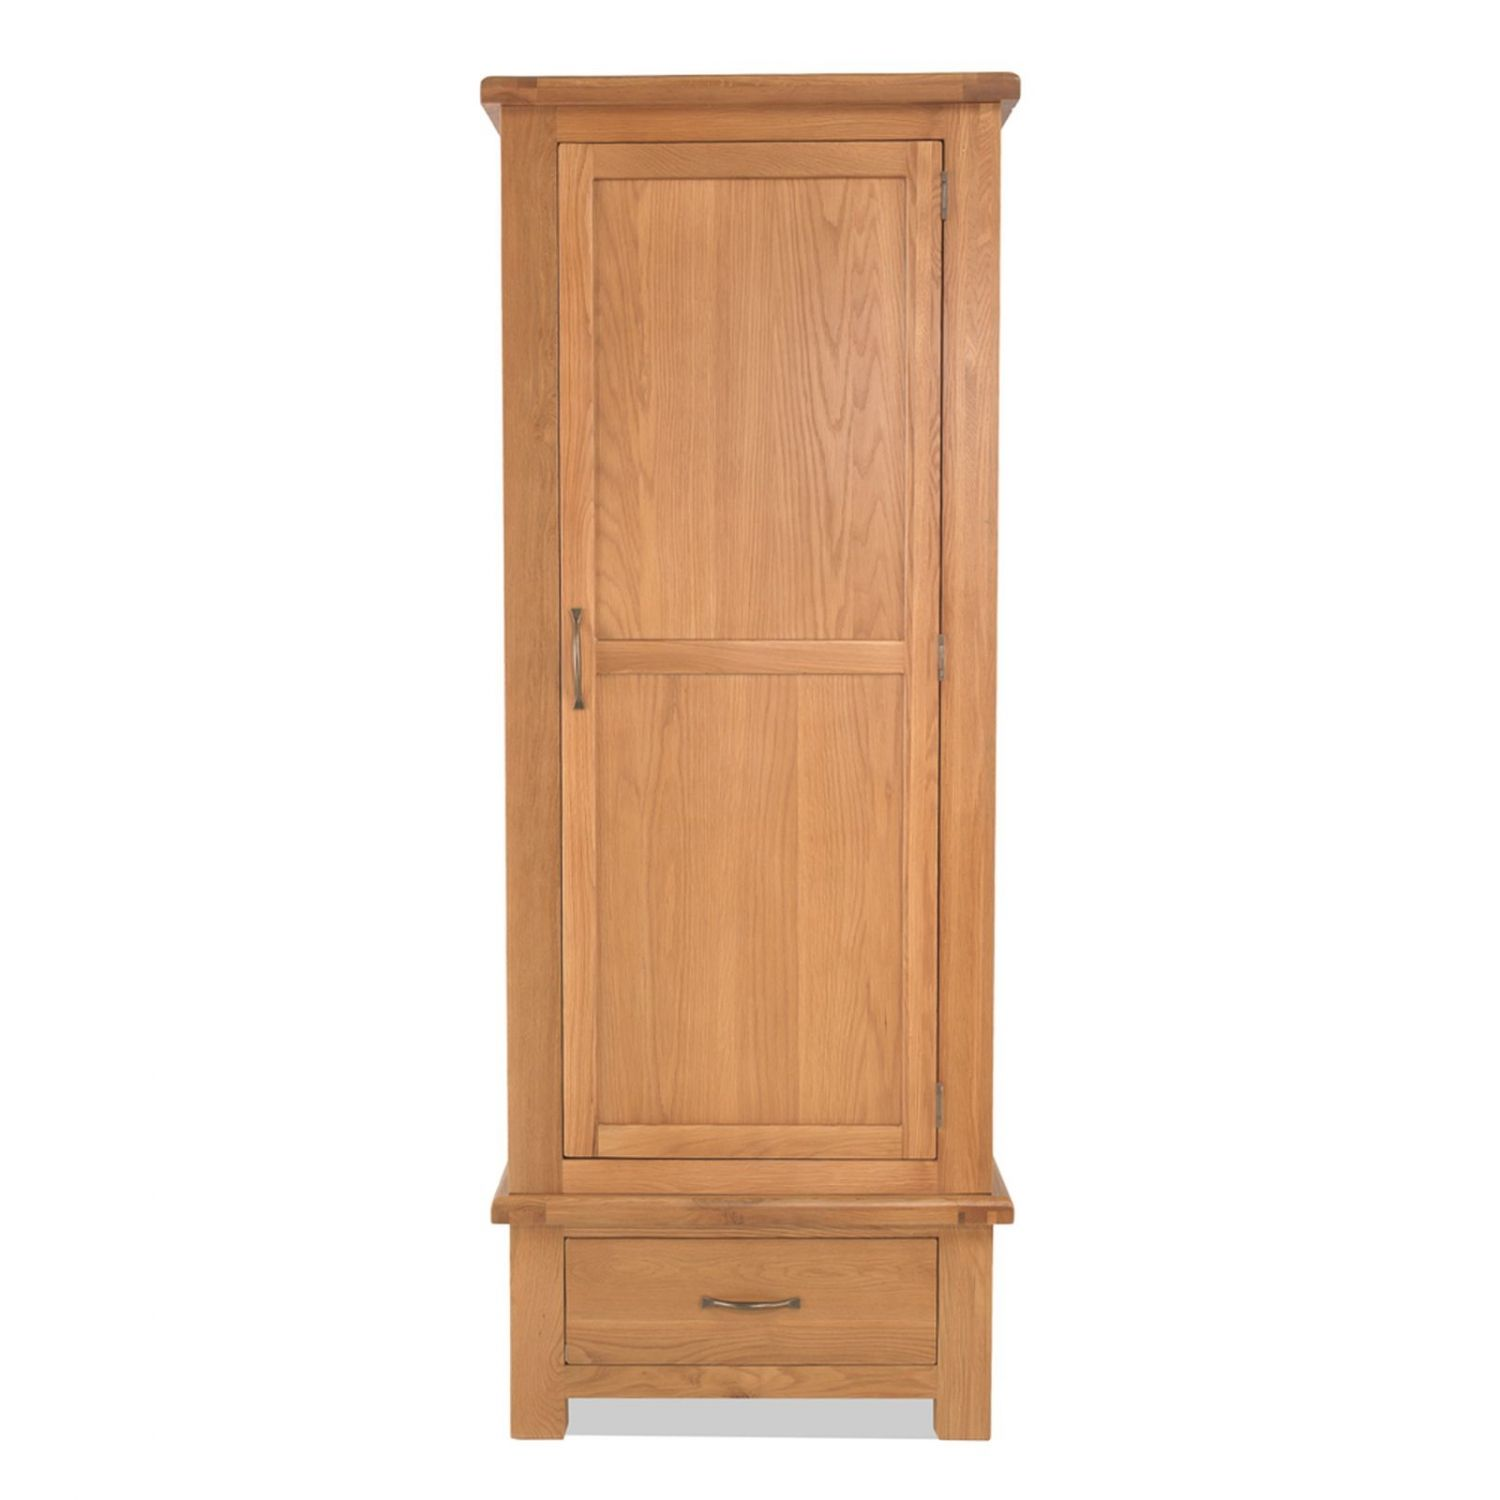 Tuscany solid oak bedroom furniture single wardrobe with drawer ebay